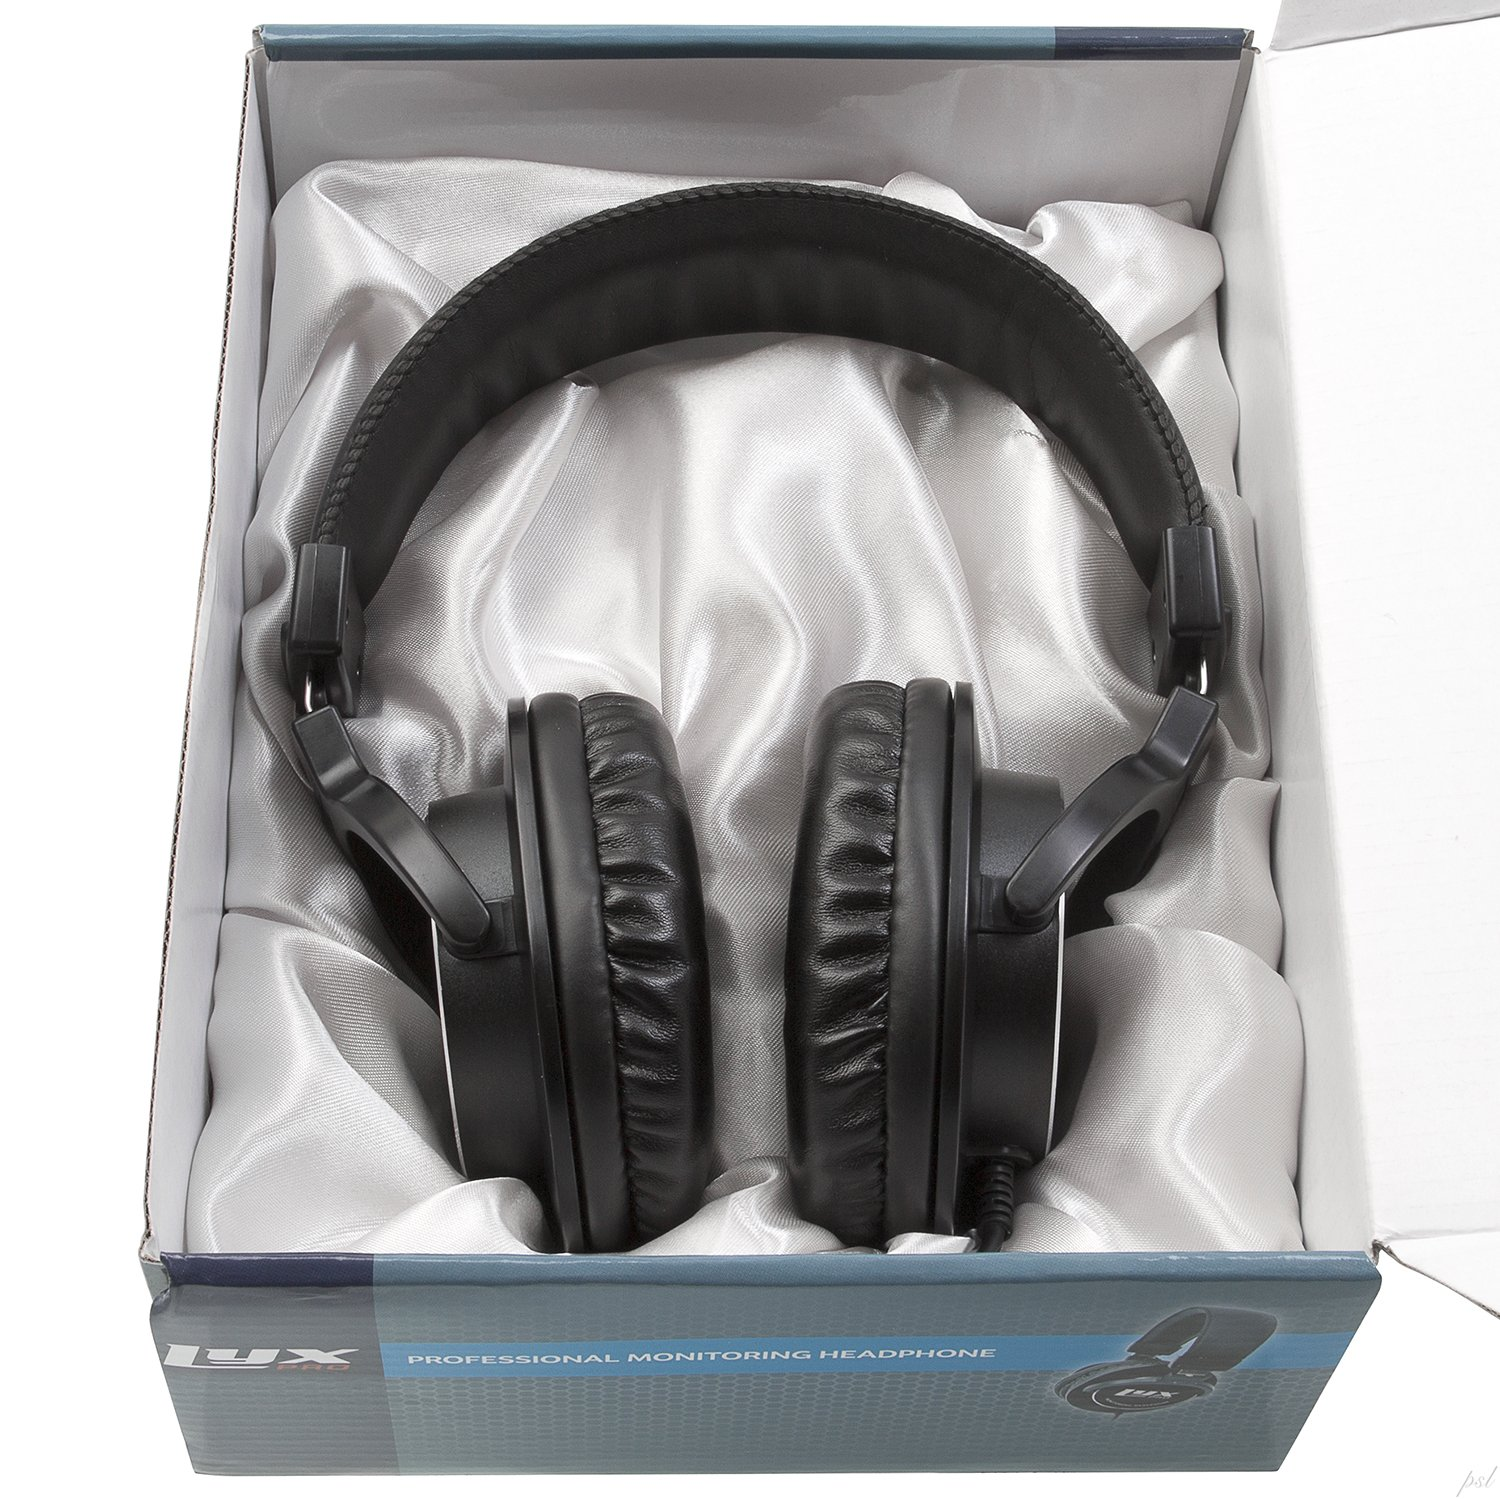 LyxPro HAS-10 Closed Back Over-Ear Professional Studio Monitor & Mixing Headphones,Music Listening,Piano,Sound Isolation, Lightweight by LyxPro (Image #7)